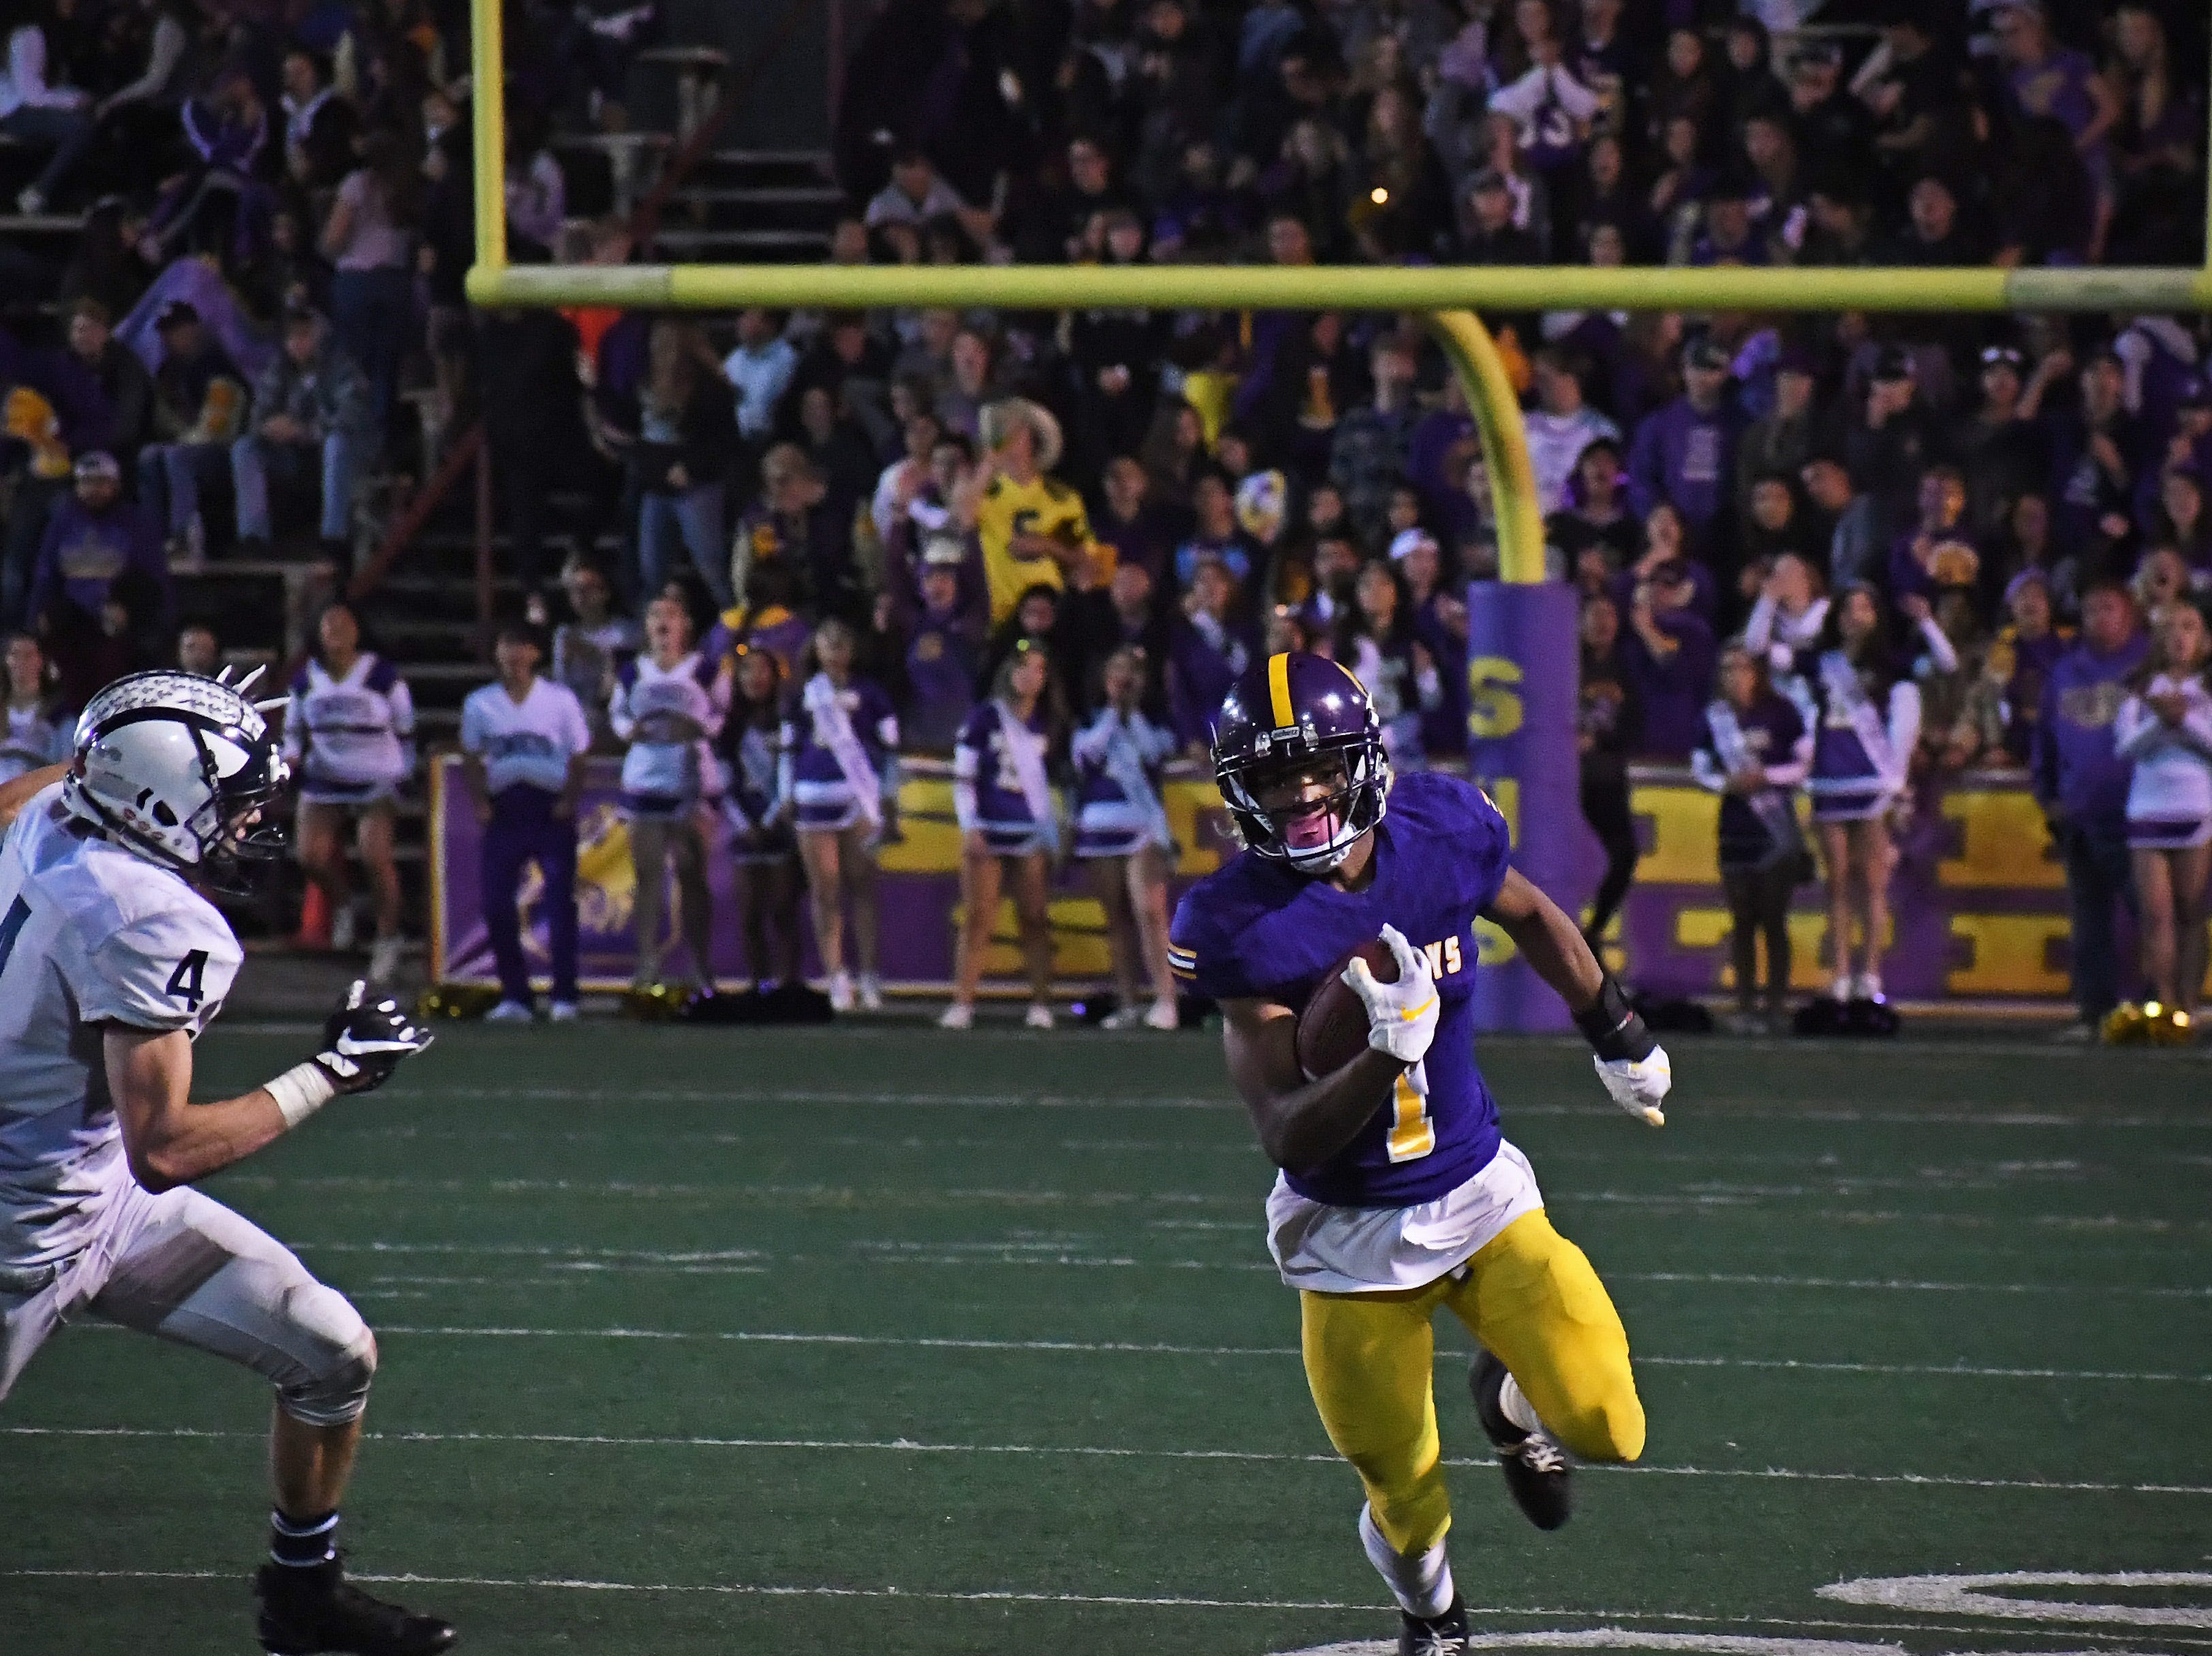 Salinas wide receiver Poe Gaskins Jr. (1) takes a catch to the outside.